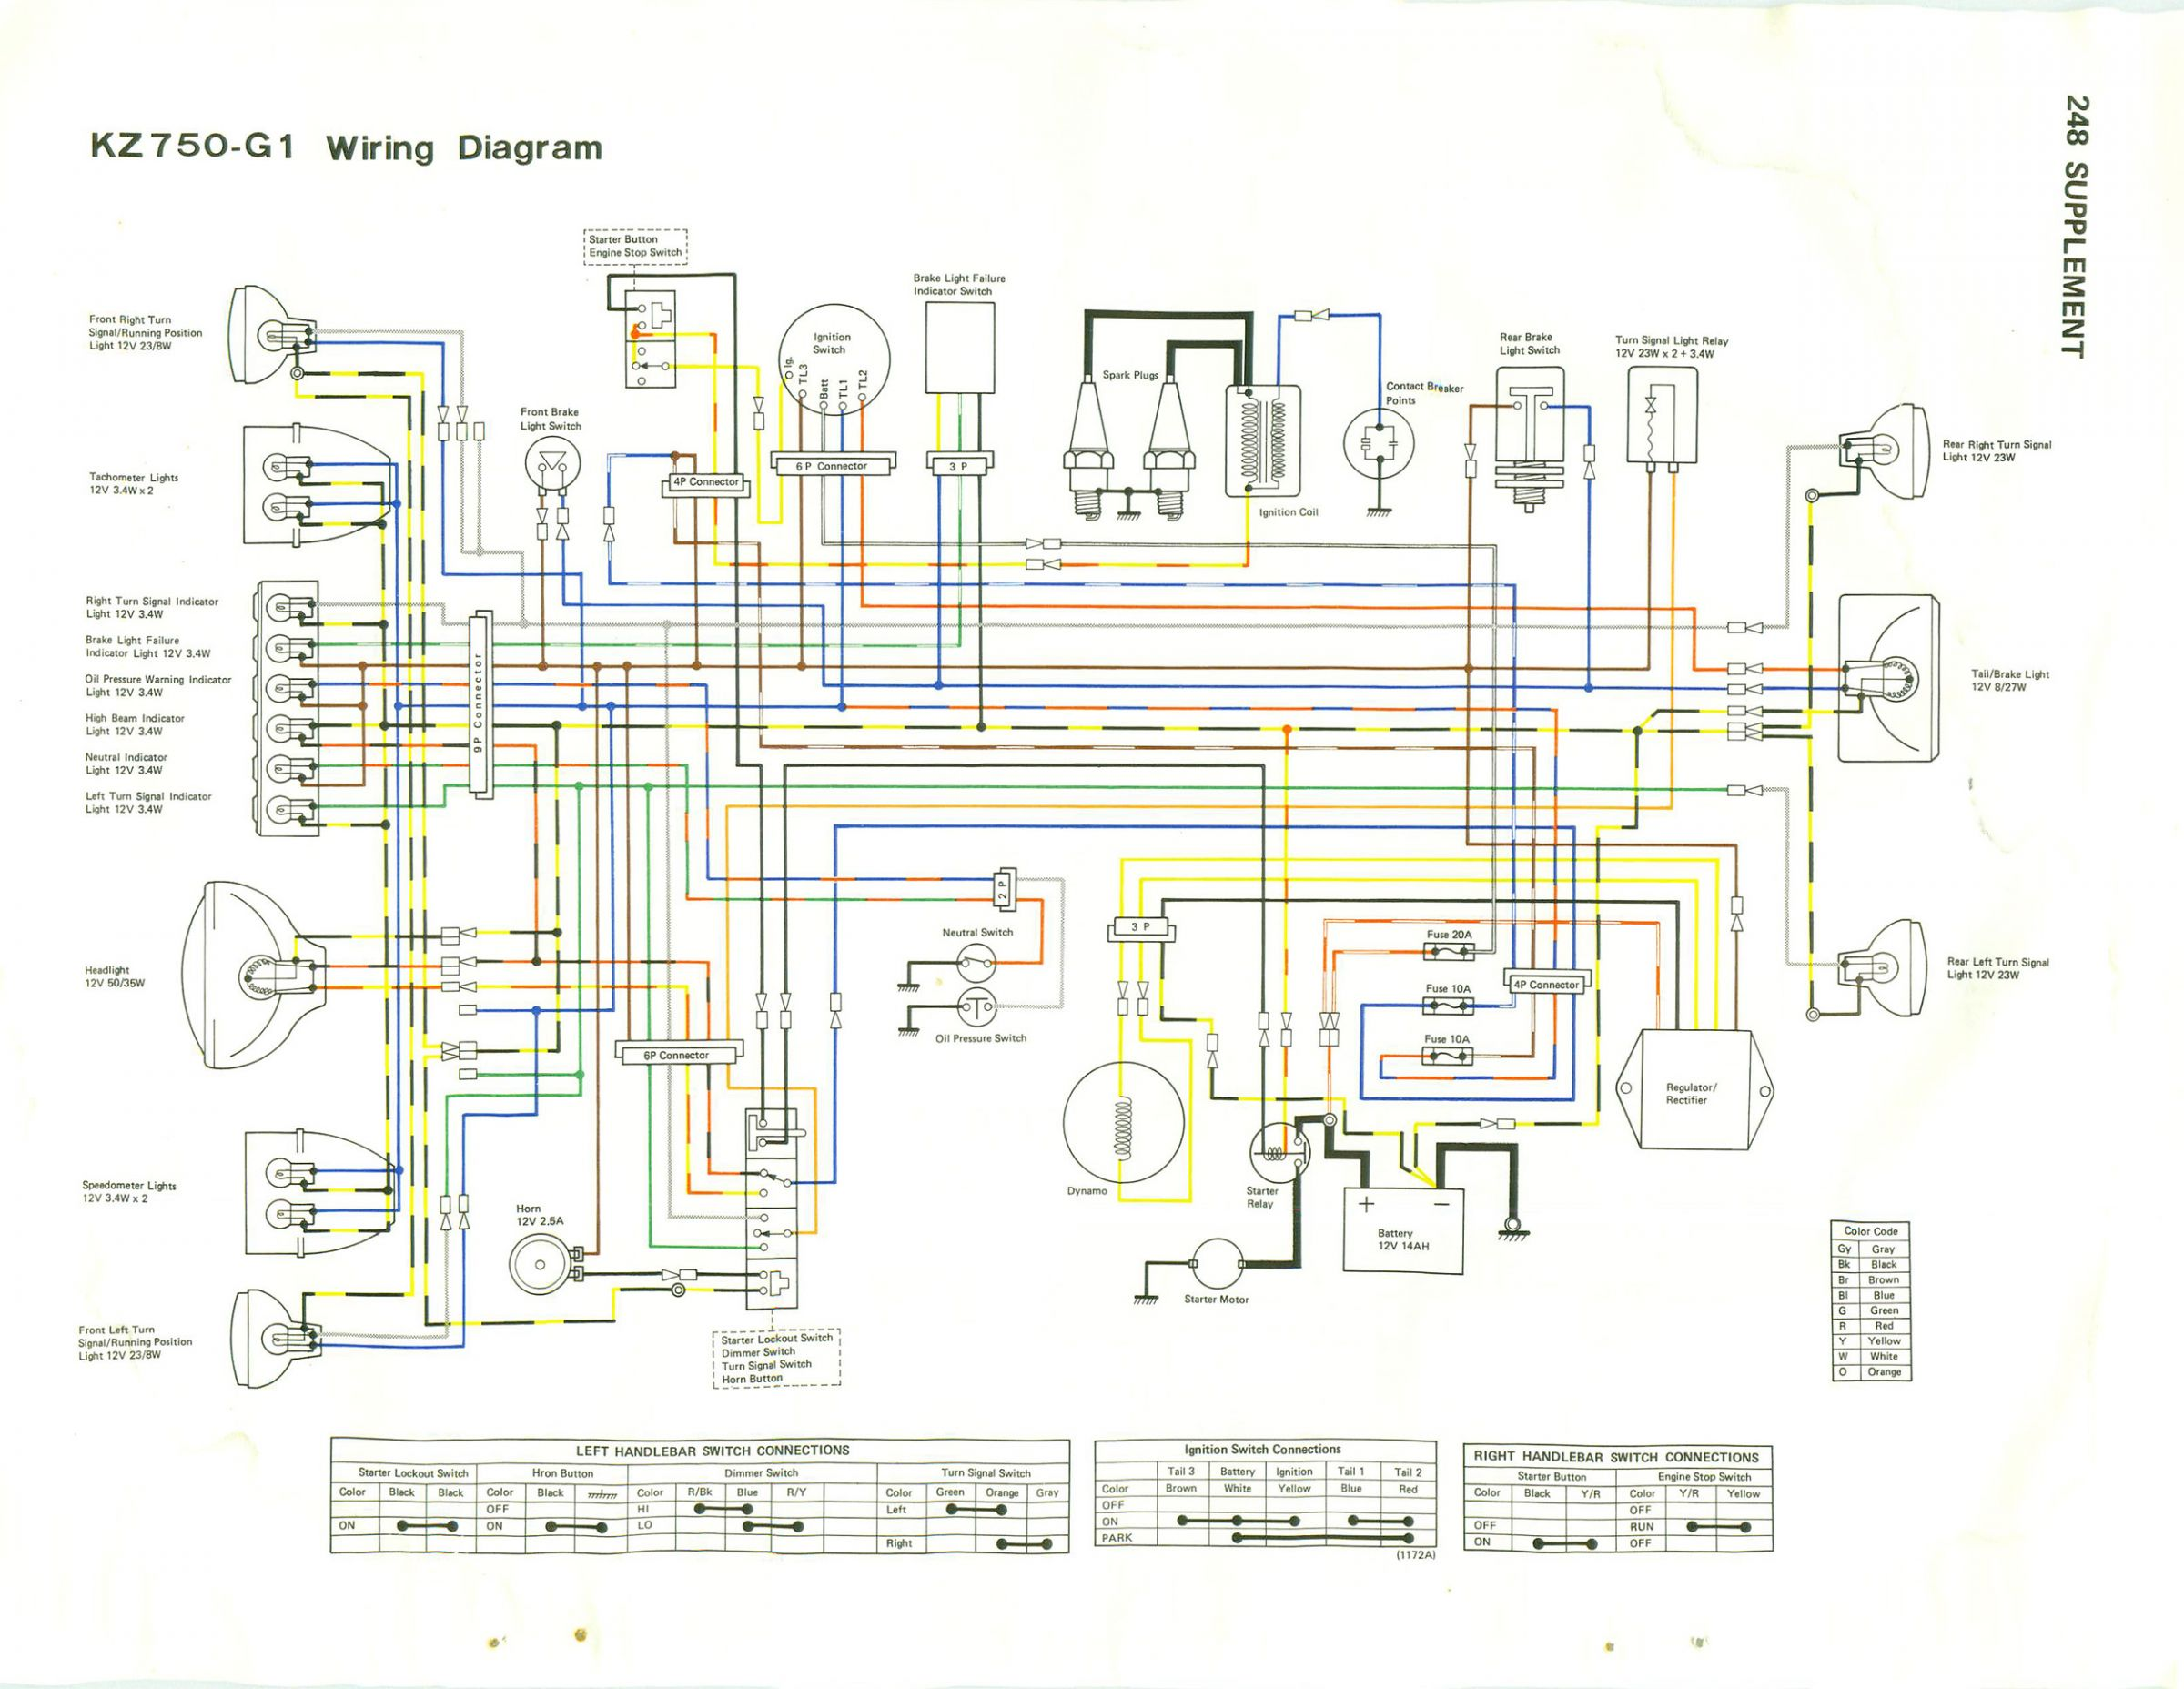 1998 kawasaki wiring diagram 1998 kawasaki zx7r wiring diagram 1998 image kawasaki kz440 wiring diagram kawasaki wiring diagrams on 1998